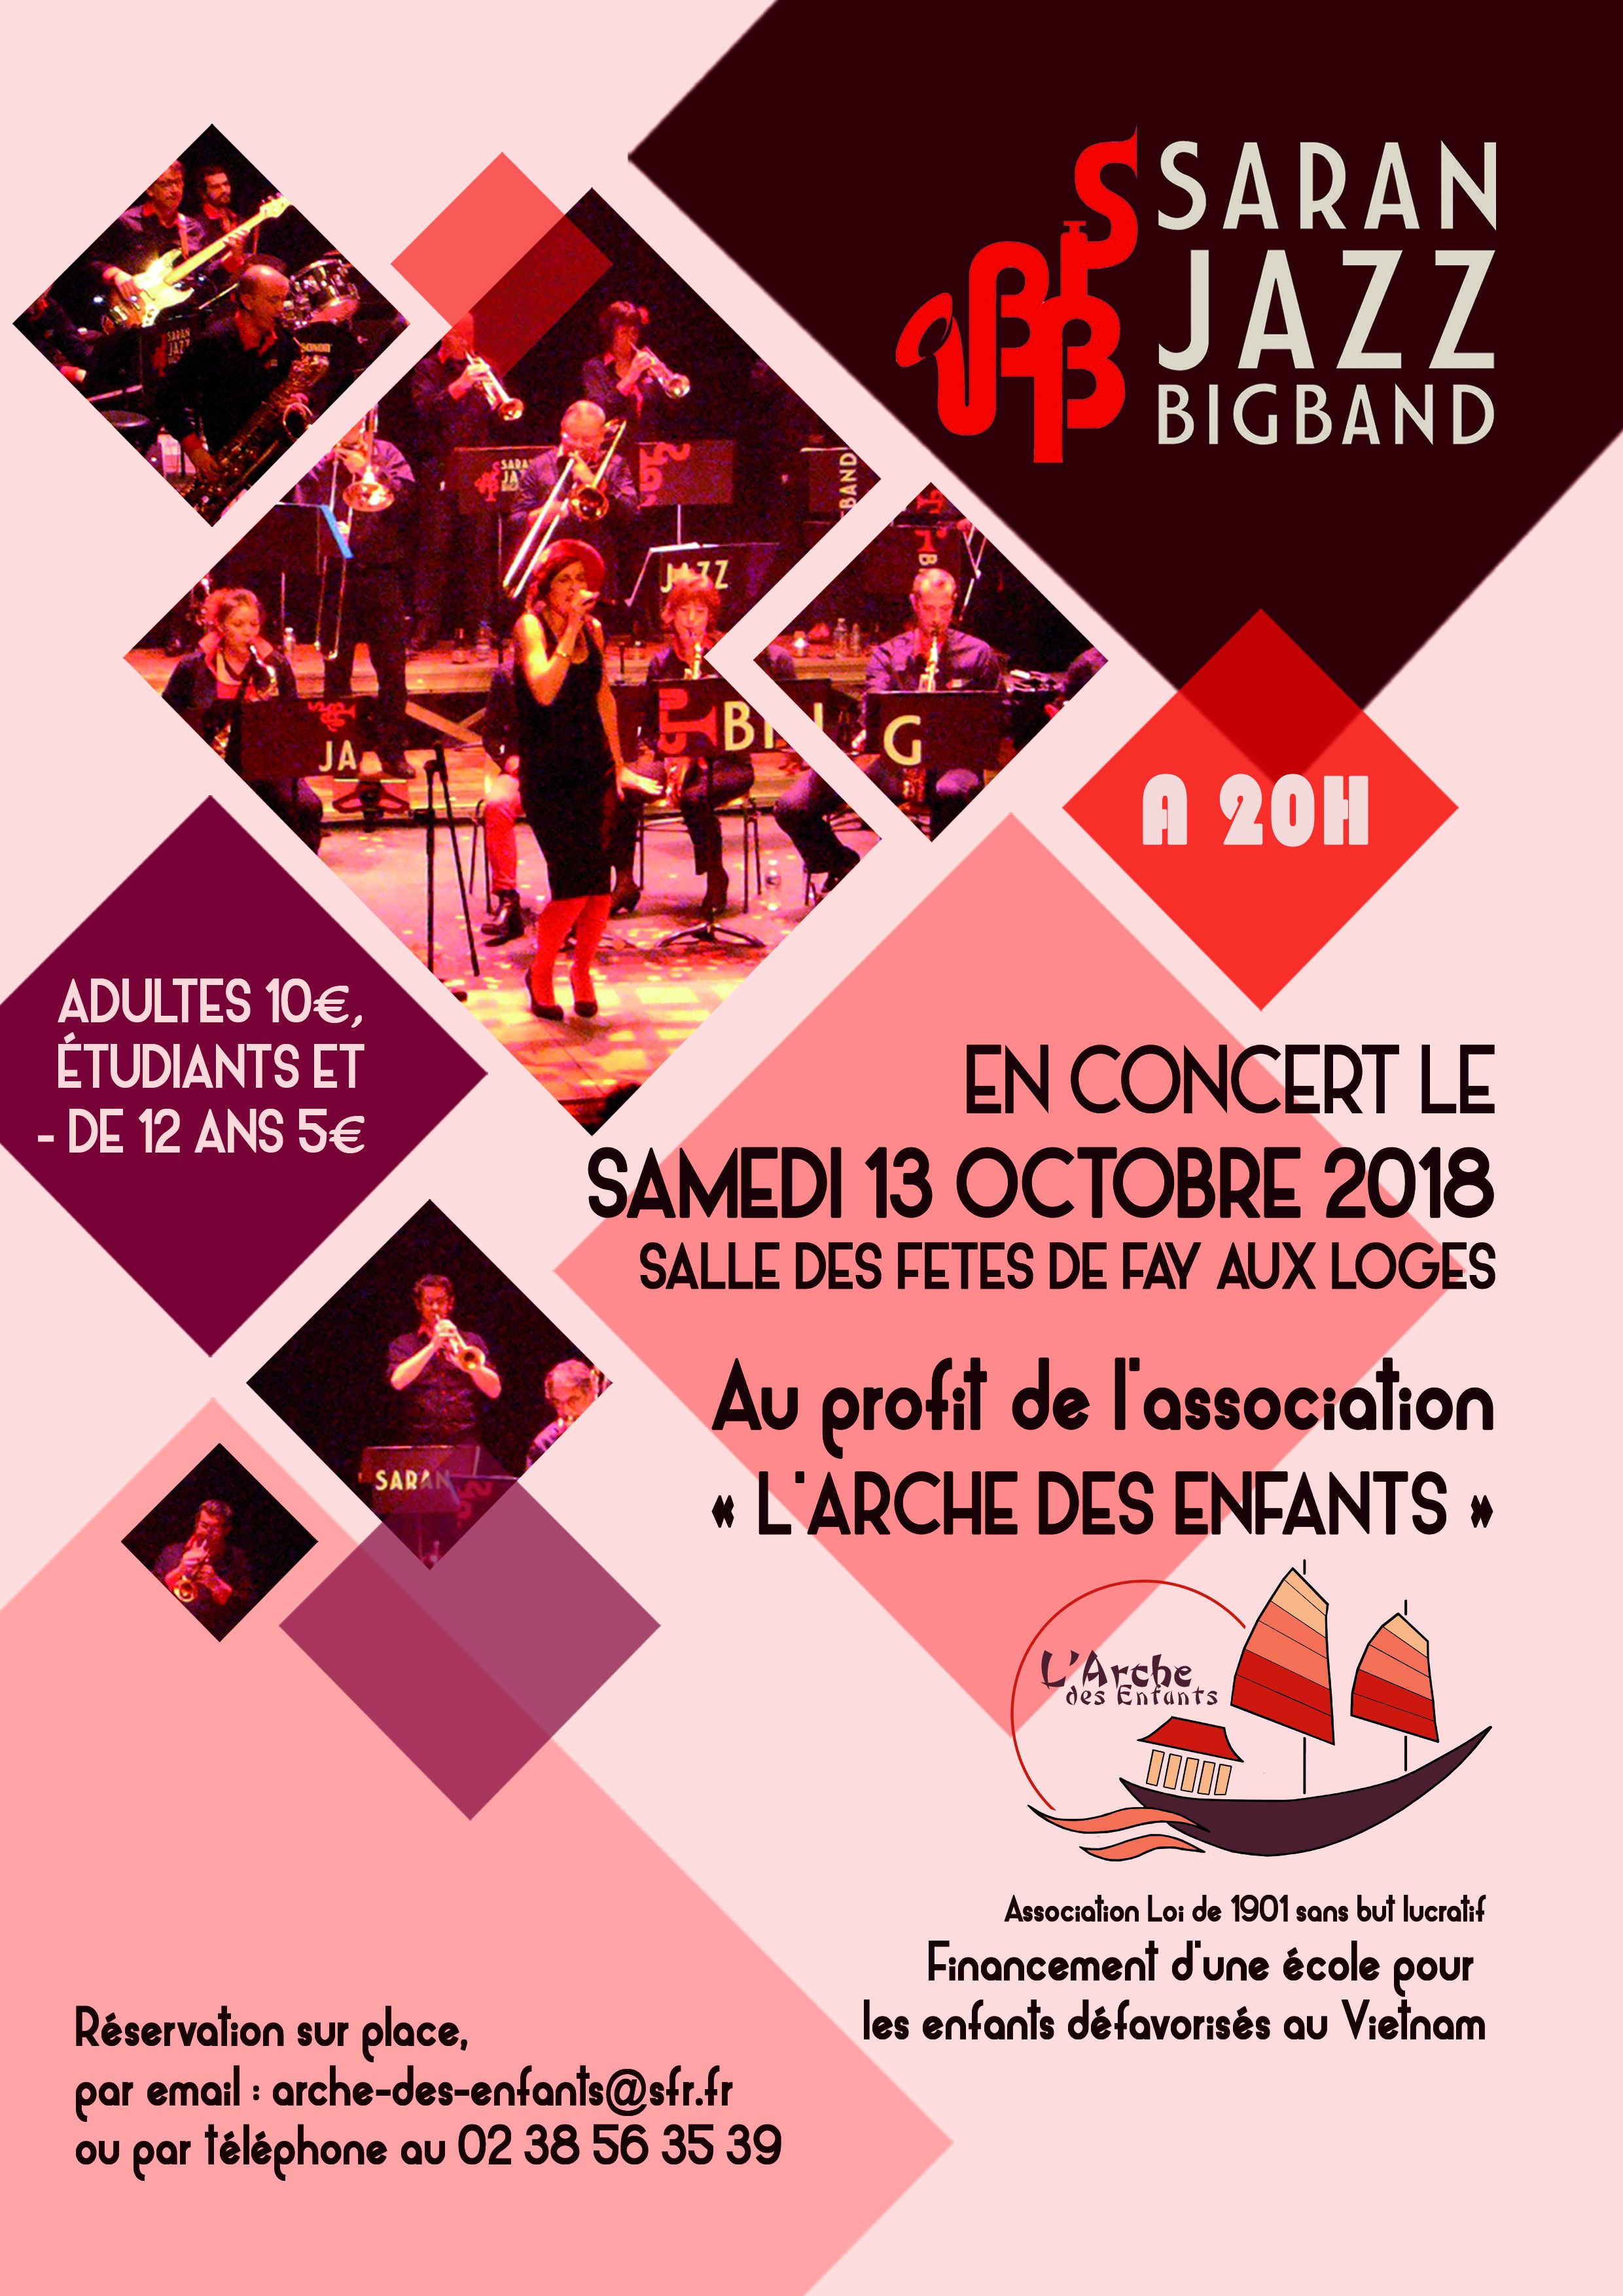 AfficheConcert Les musiciens du  Saran Jazz Big Band